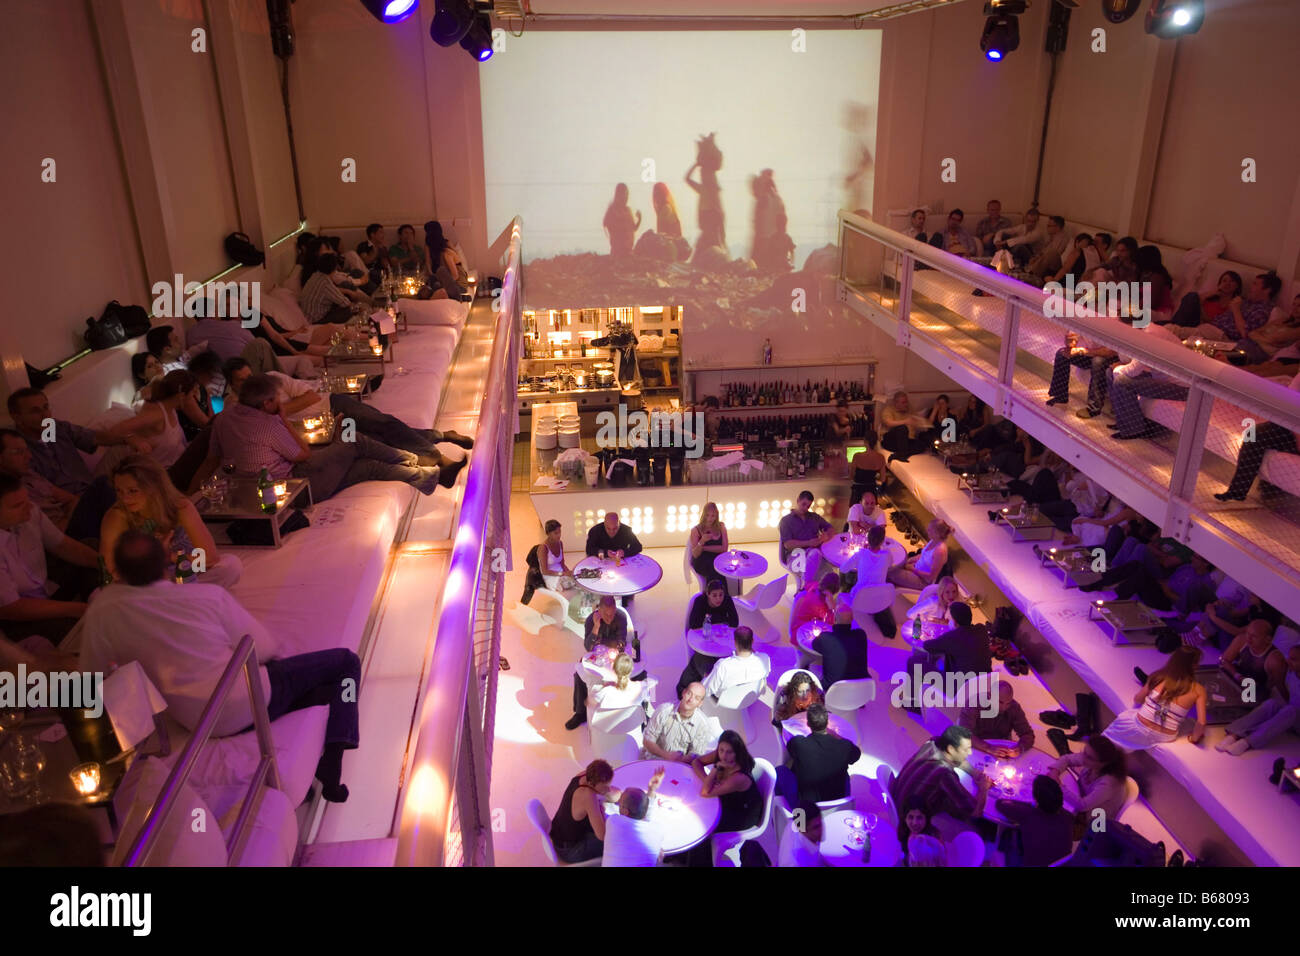 Interior of Supperclub with lots of guests, Amsterdam, The Netherlands - Stock Image